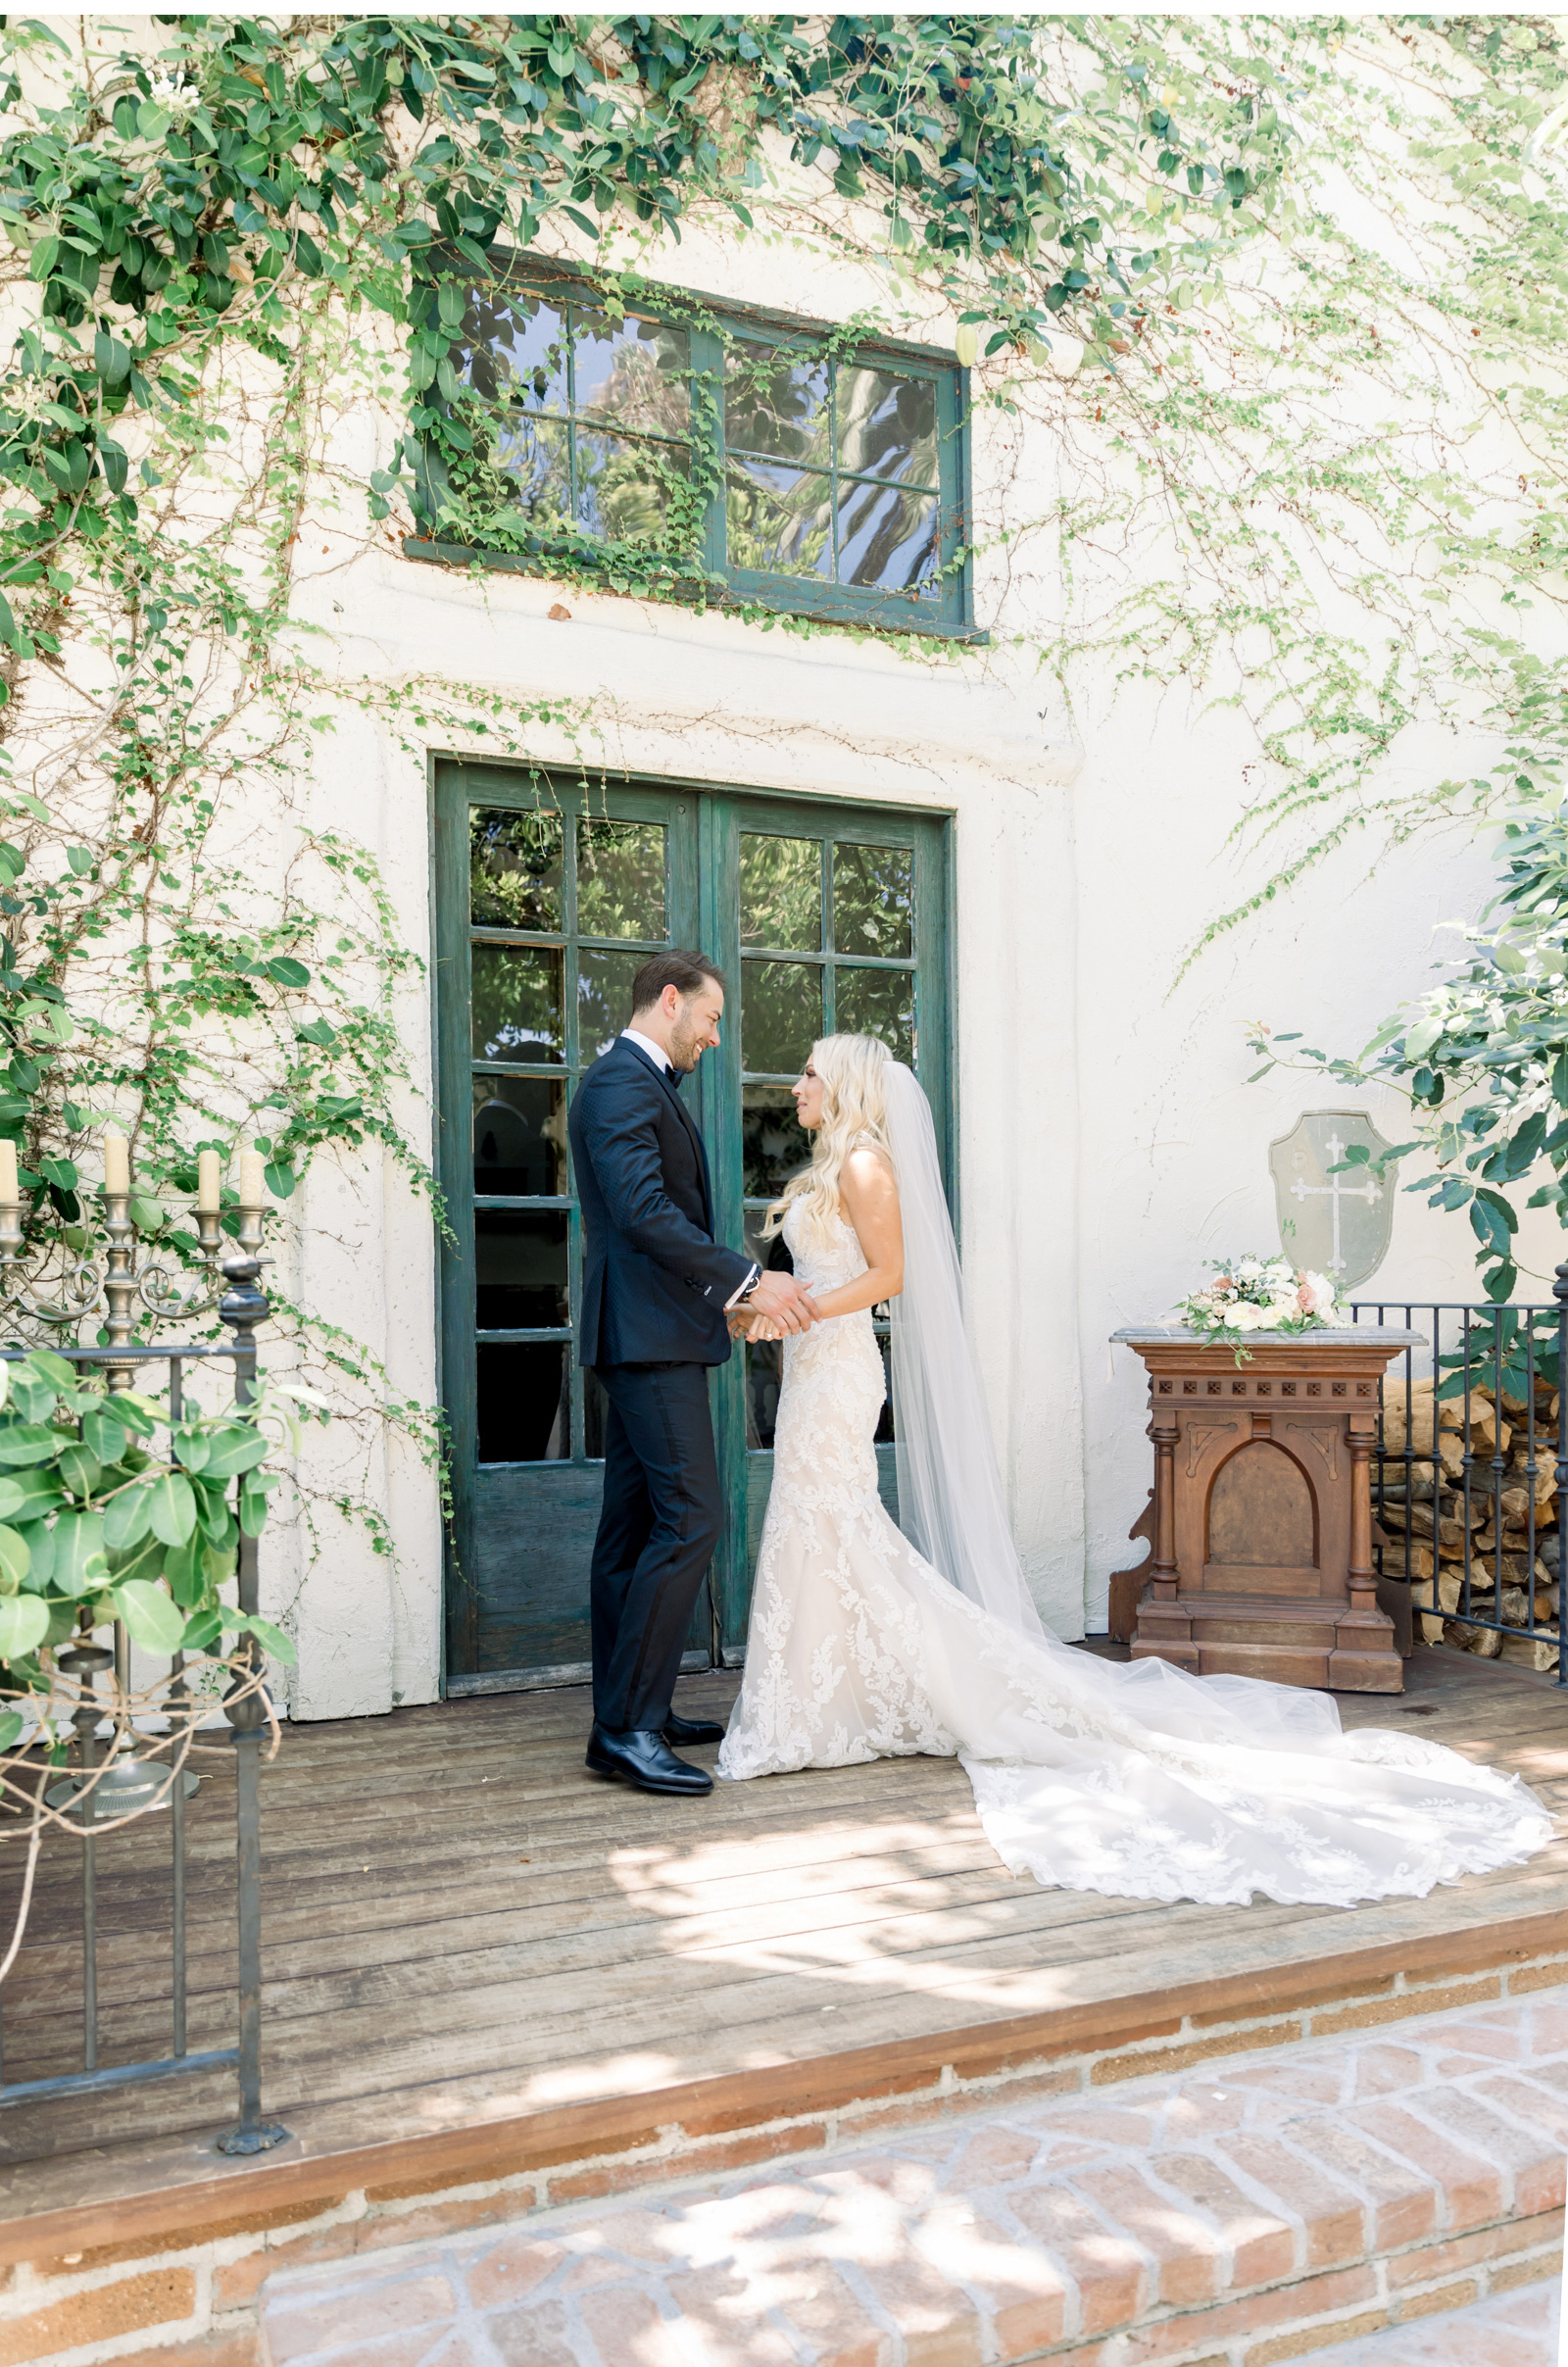 San-Juan-Capistrano-Wedding-Photographer-Malibu-Weddings-Malibu-Wedding-Venues-Natalie-Schutt-Photographer_05.jpg